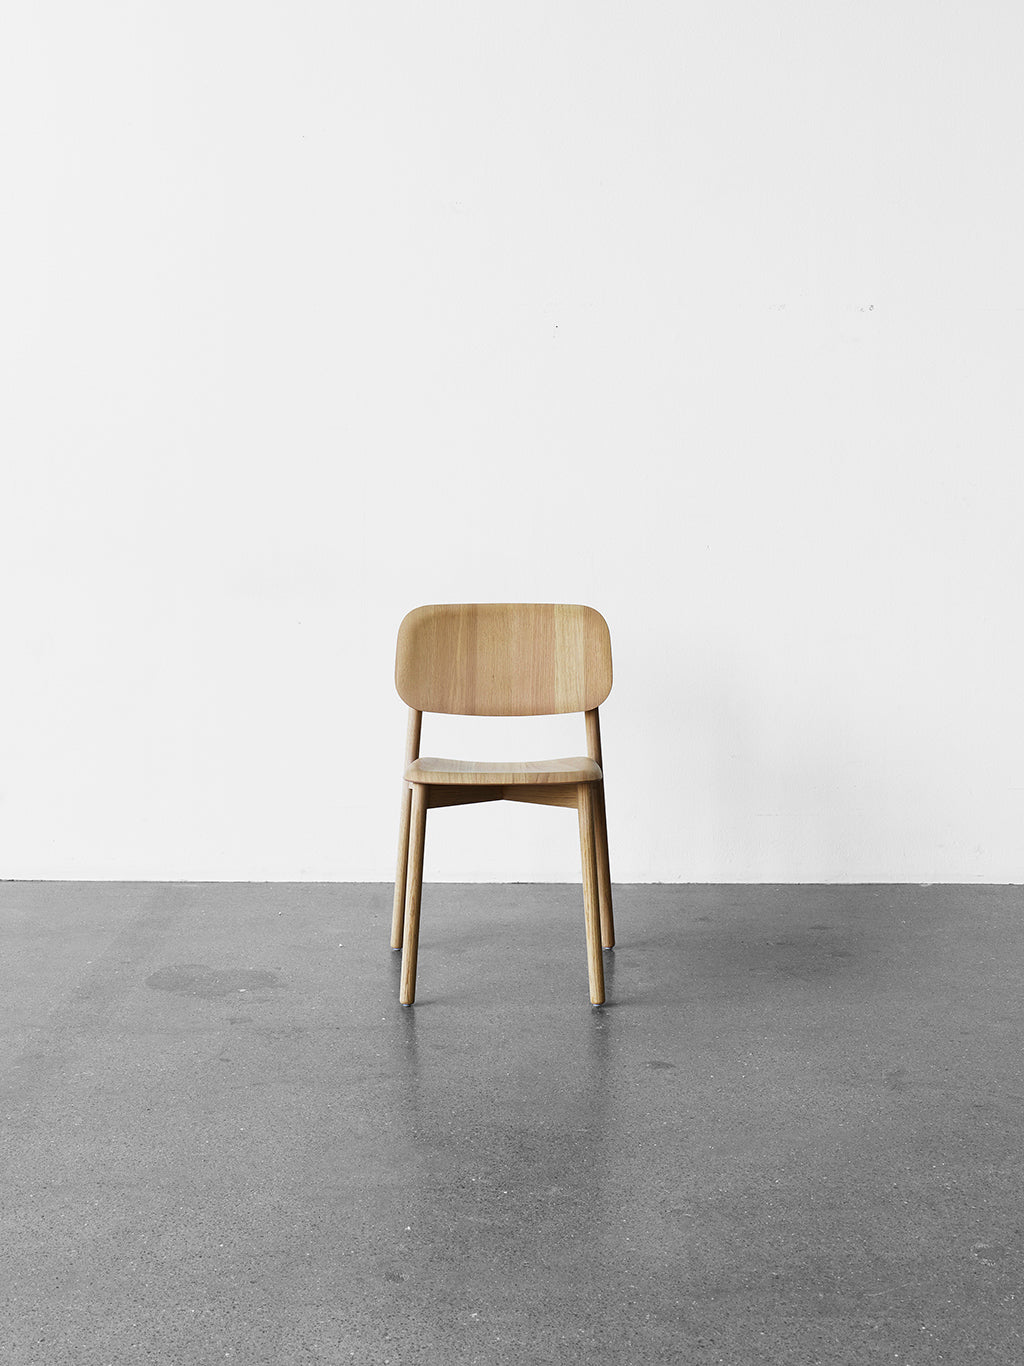 The Soft Edge chair by Iskos-Berlin for Hay _ The Fine Store